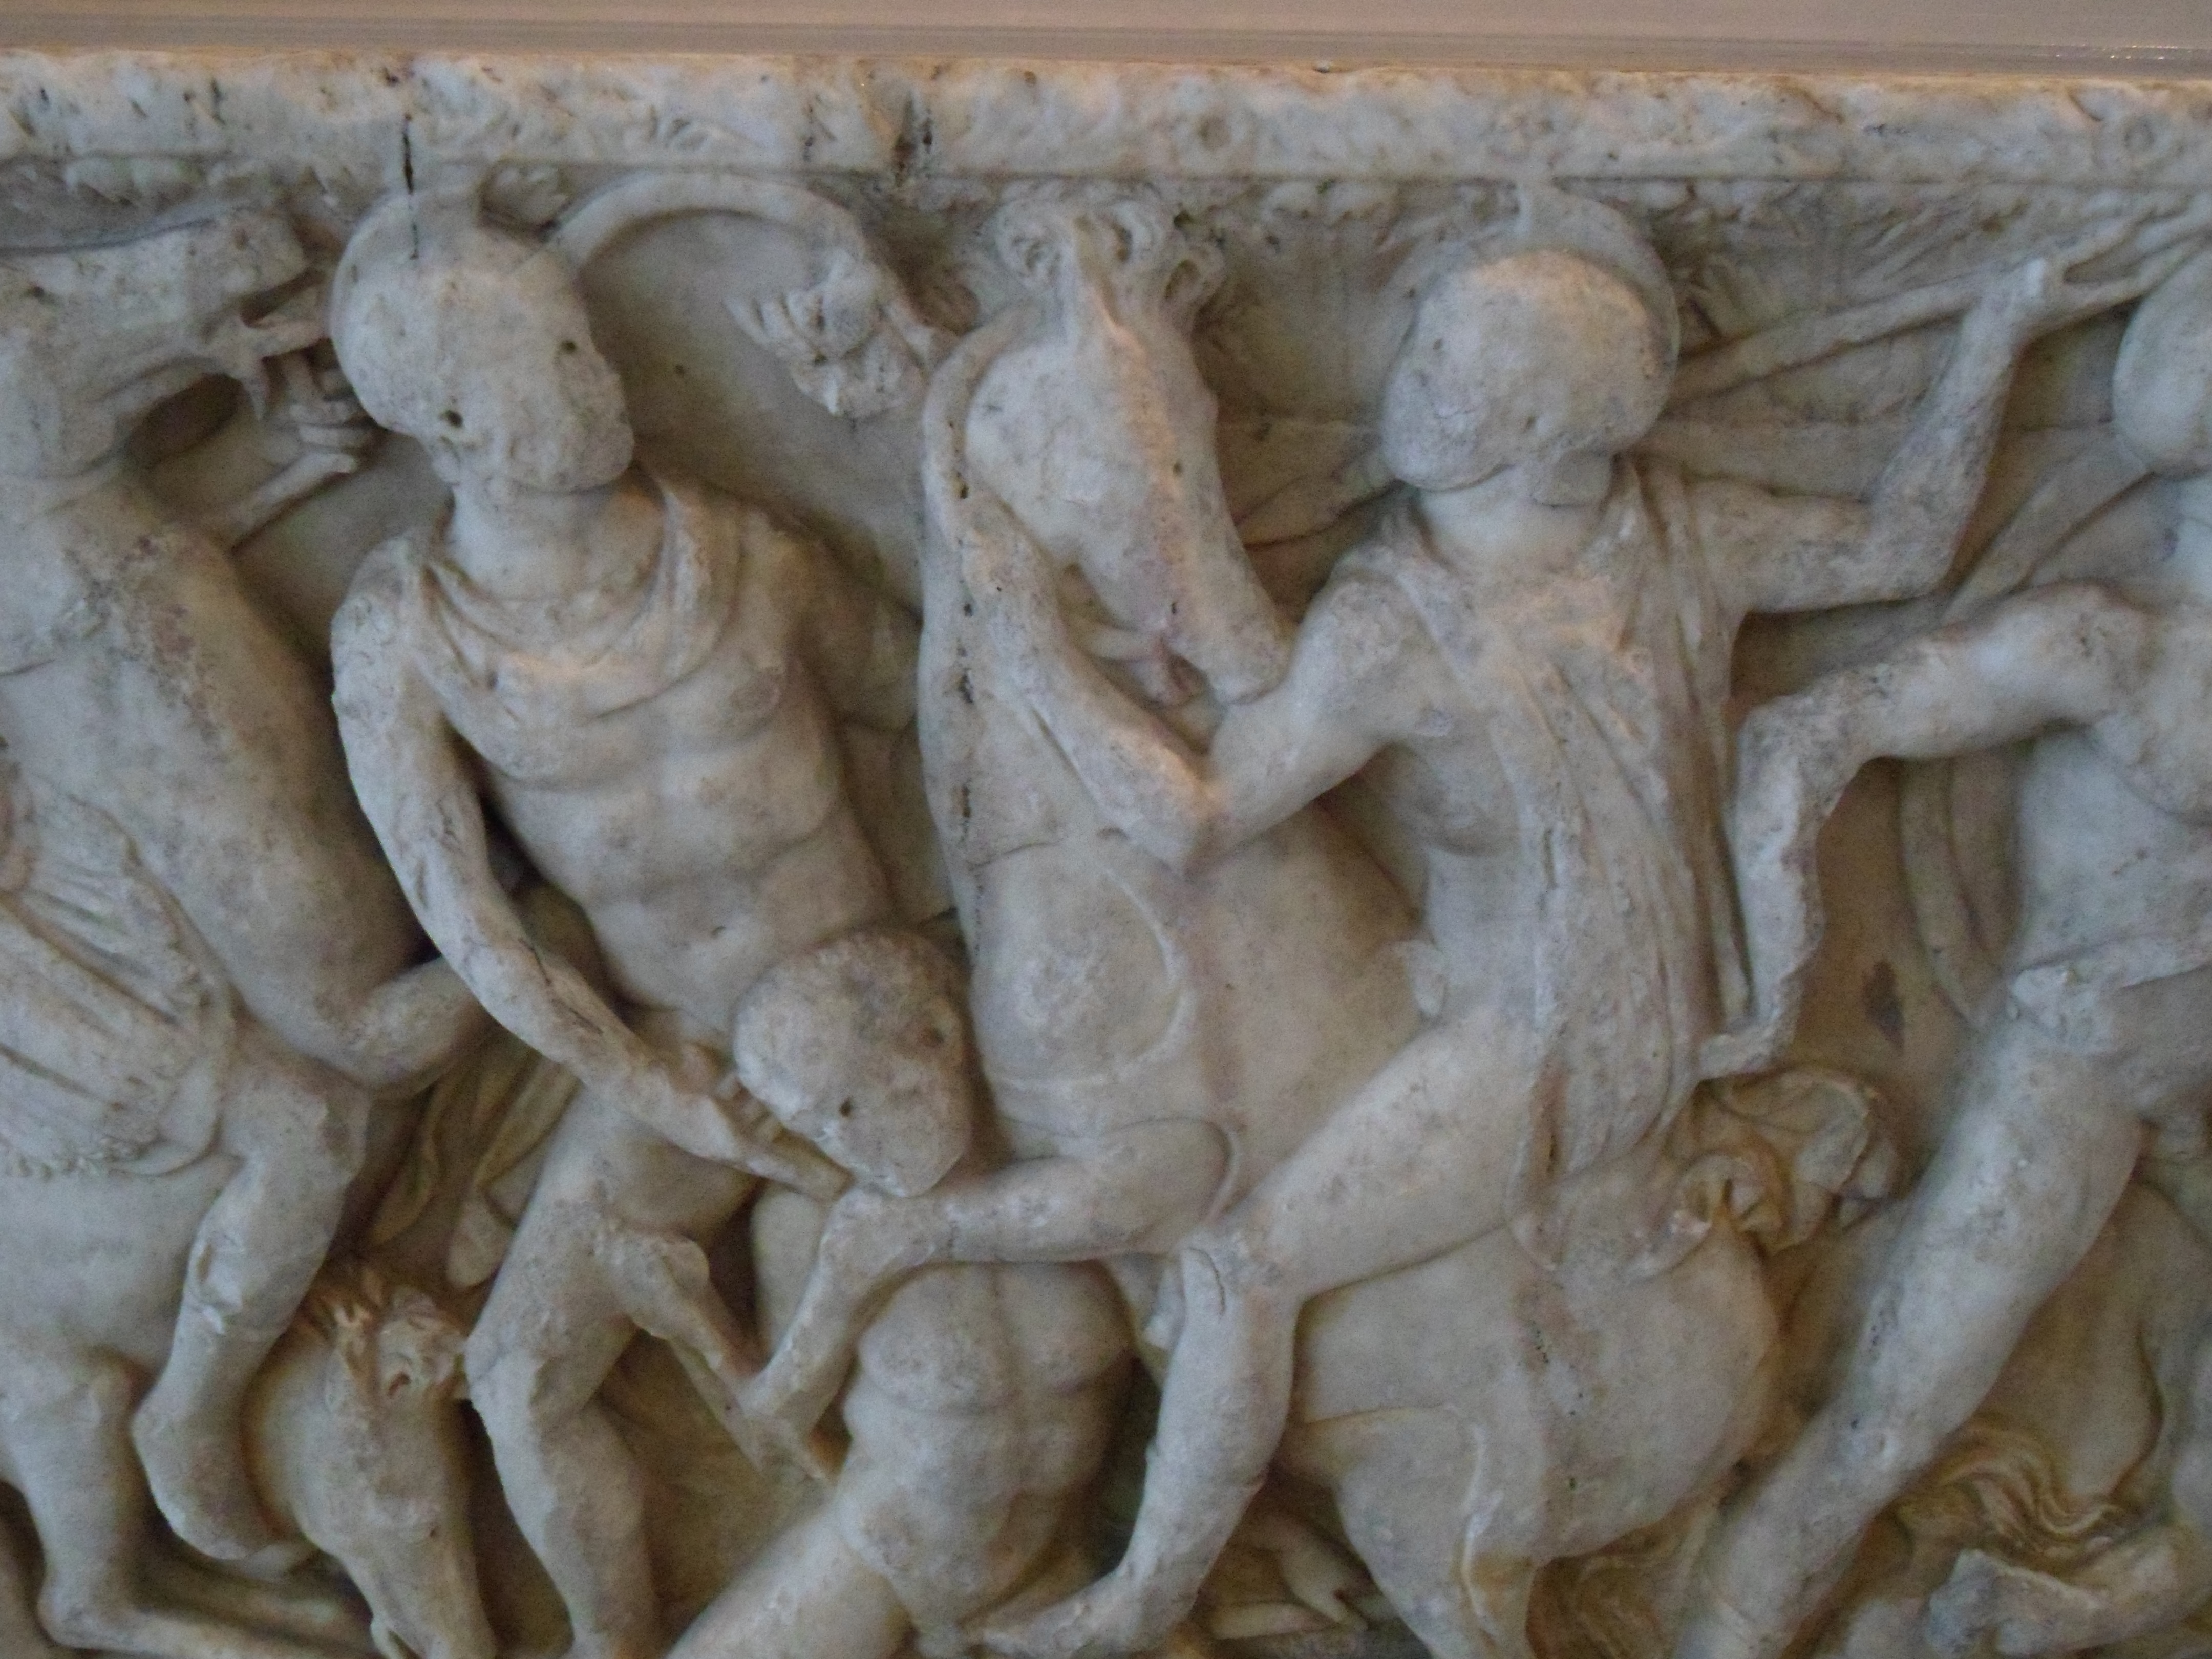 Relief of jumbled infantry and horsemen in Greek clothing fighting each other